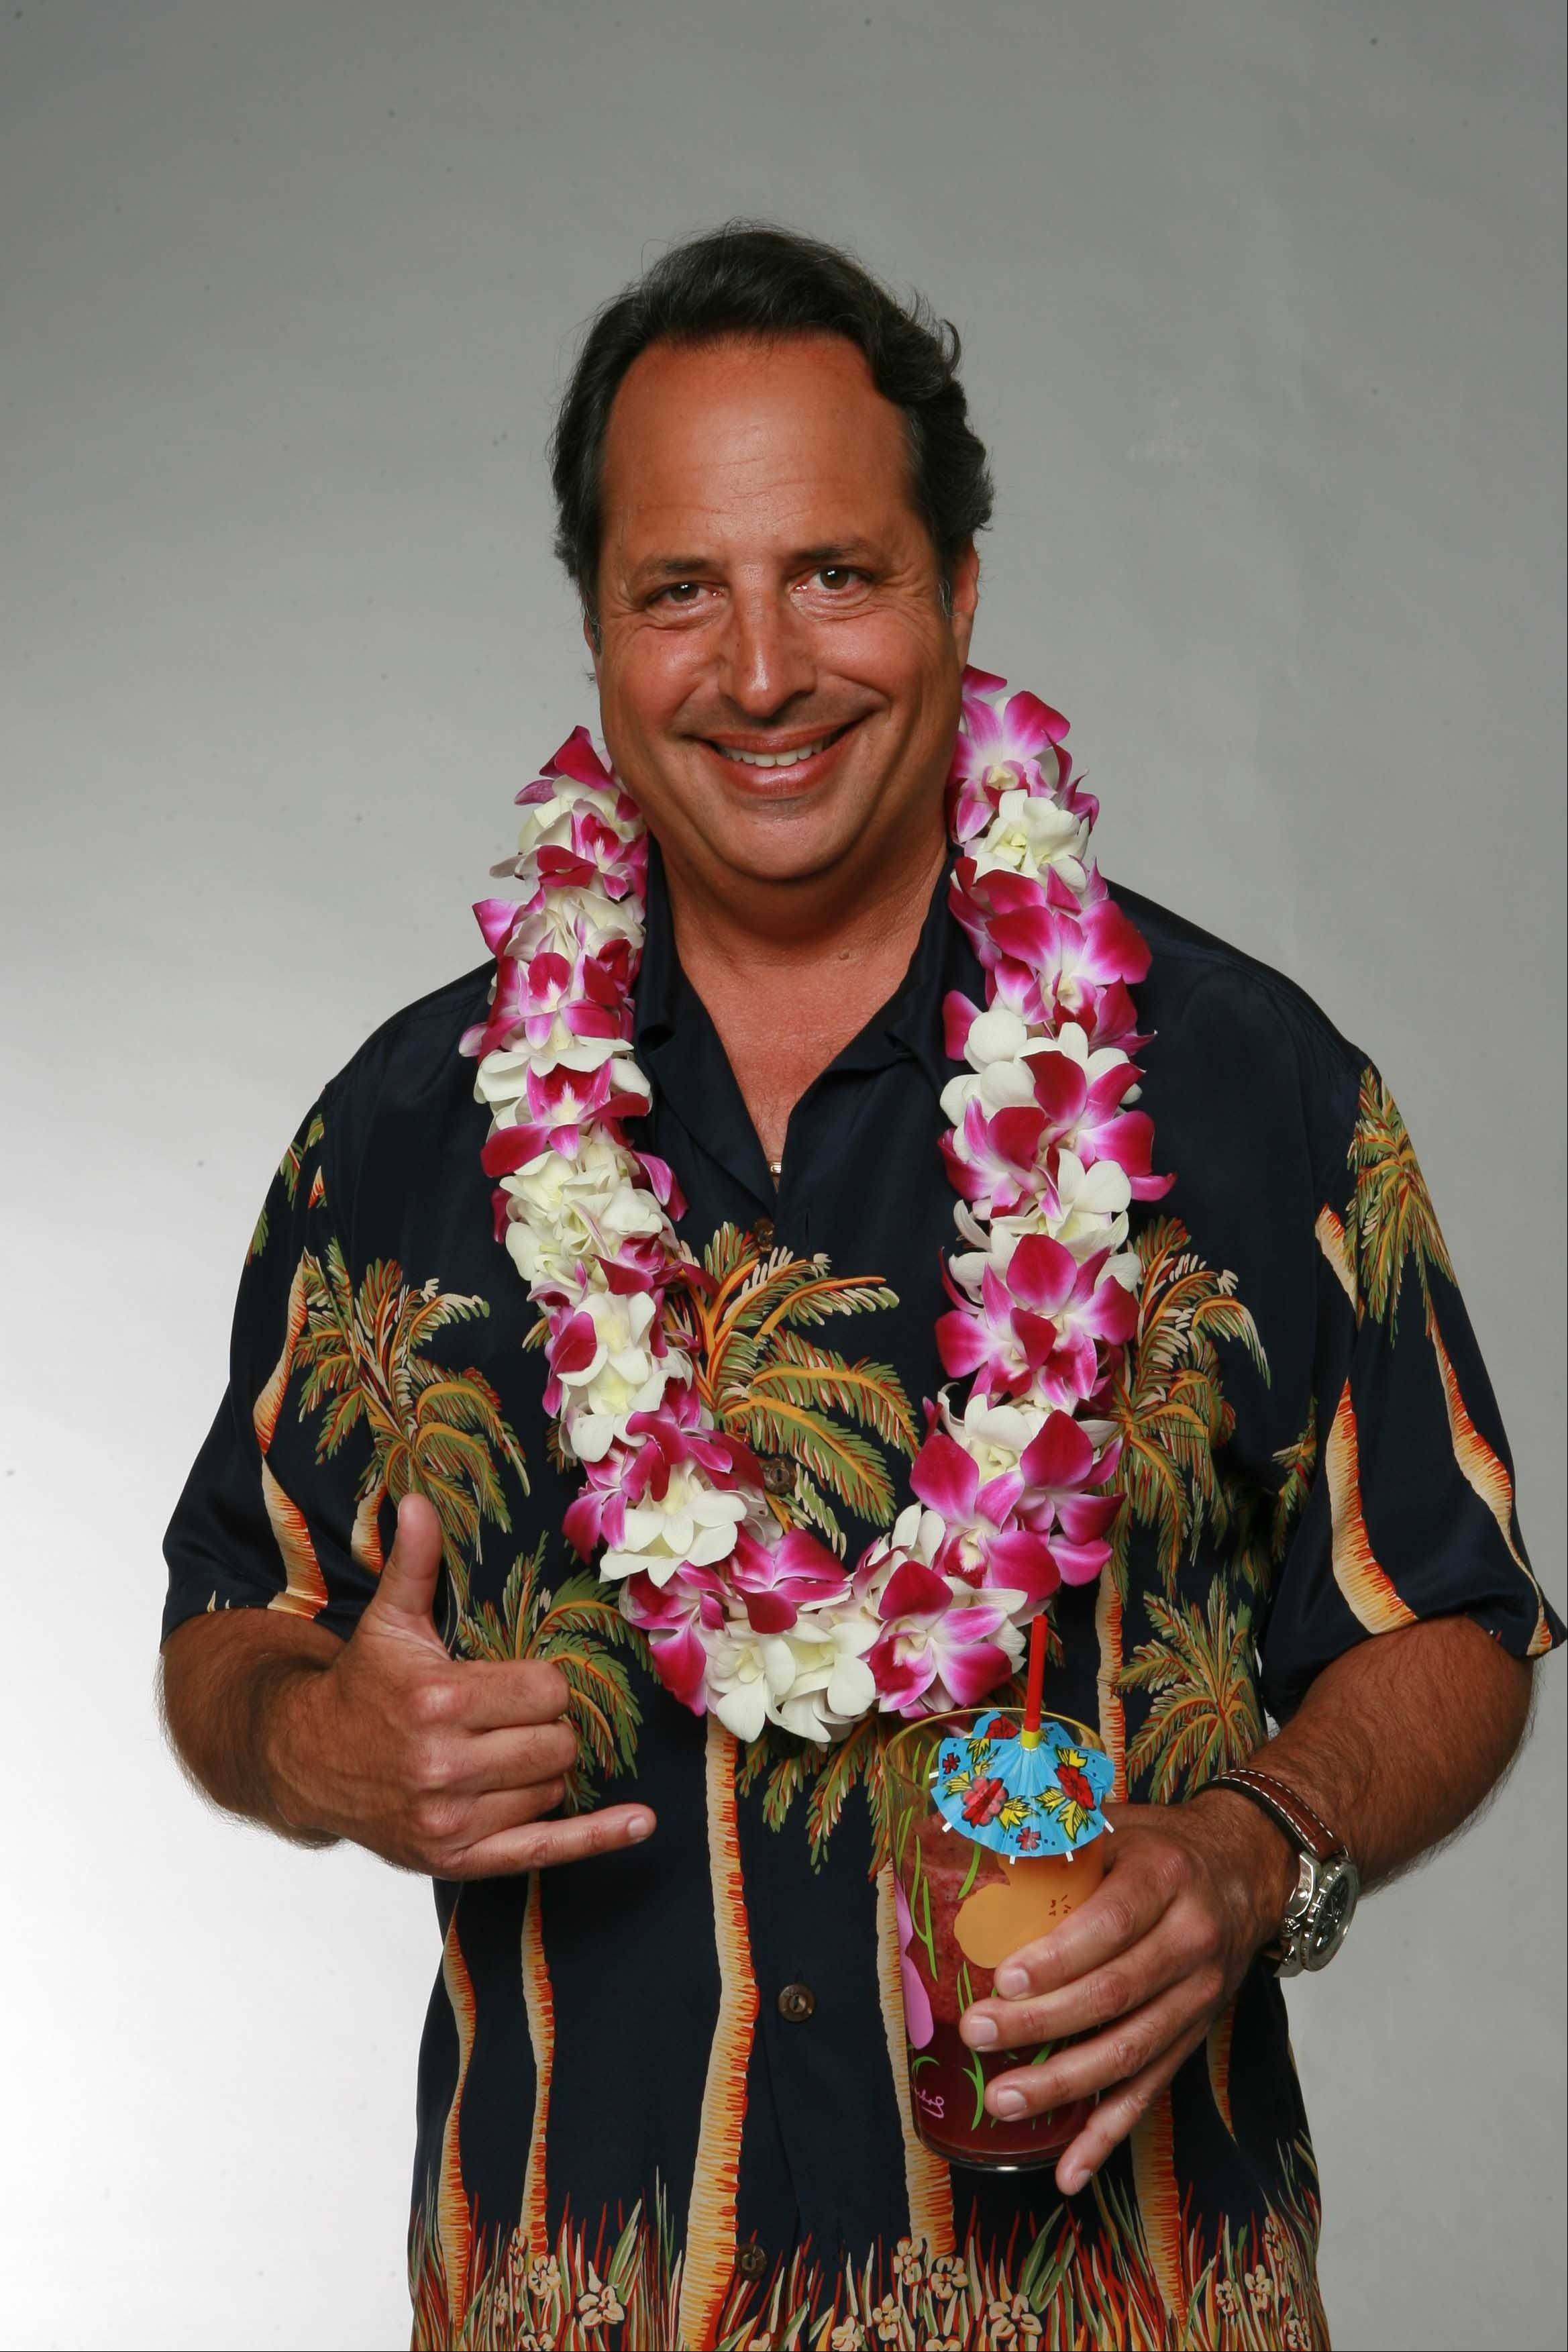 Comedian Jon Lovitz performs at the Improv Comedy Showcase in Schaumburg from Friday through Sunday, Aug. 30-Sept. 1.